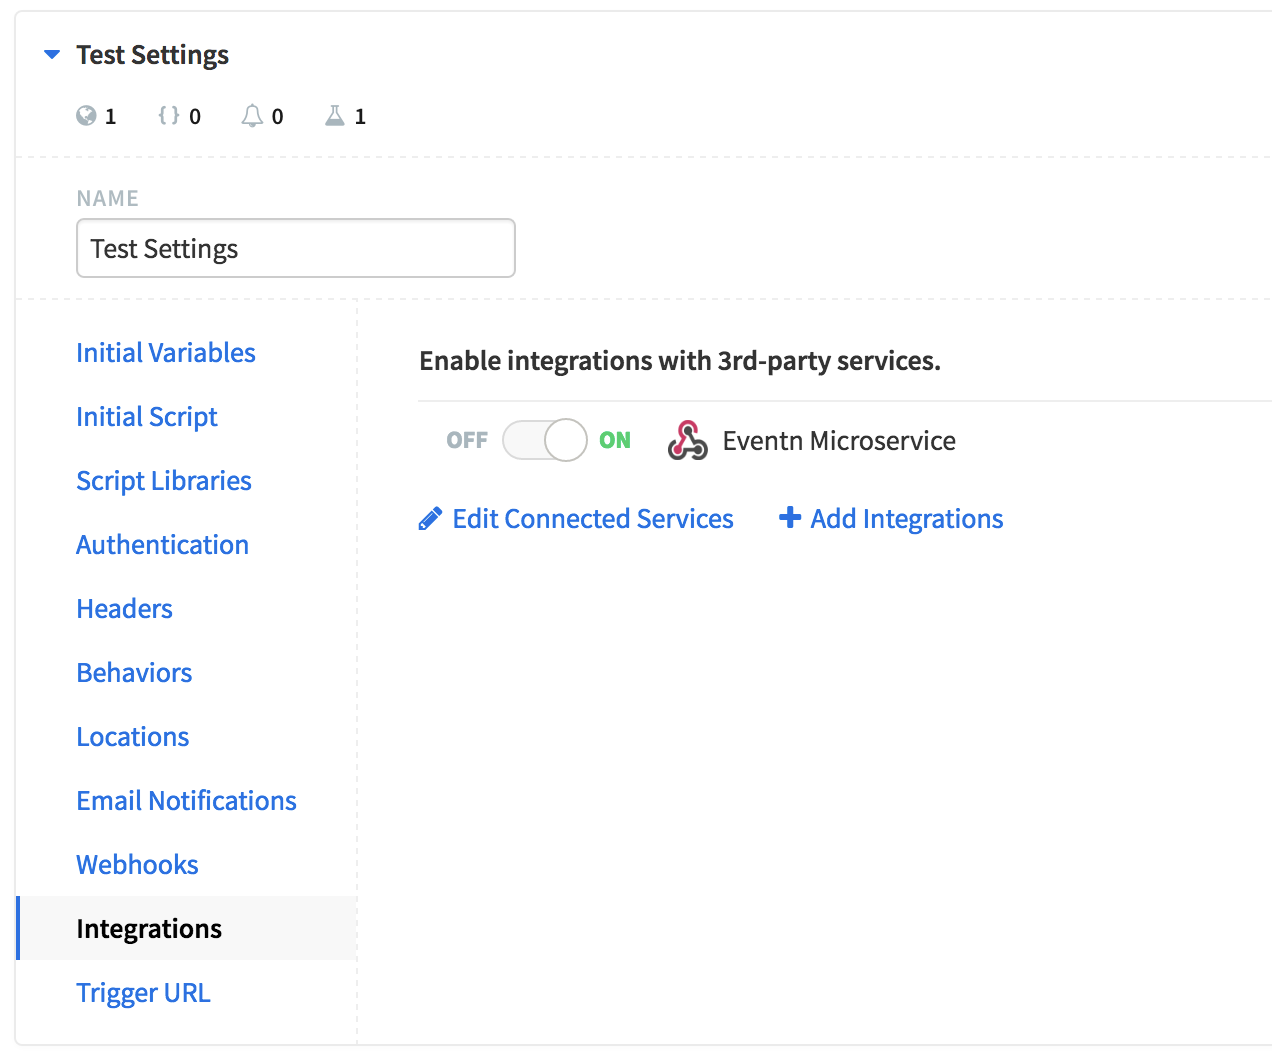 A Runscope API test environment settings, showing the Integrations menu selected on the left-hand side, and the Eventn microservice webhook toggled on.